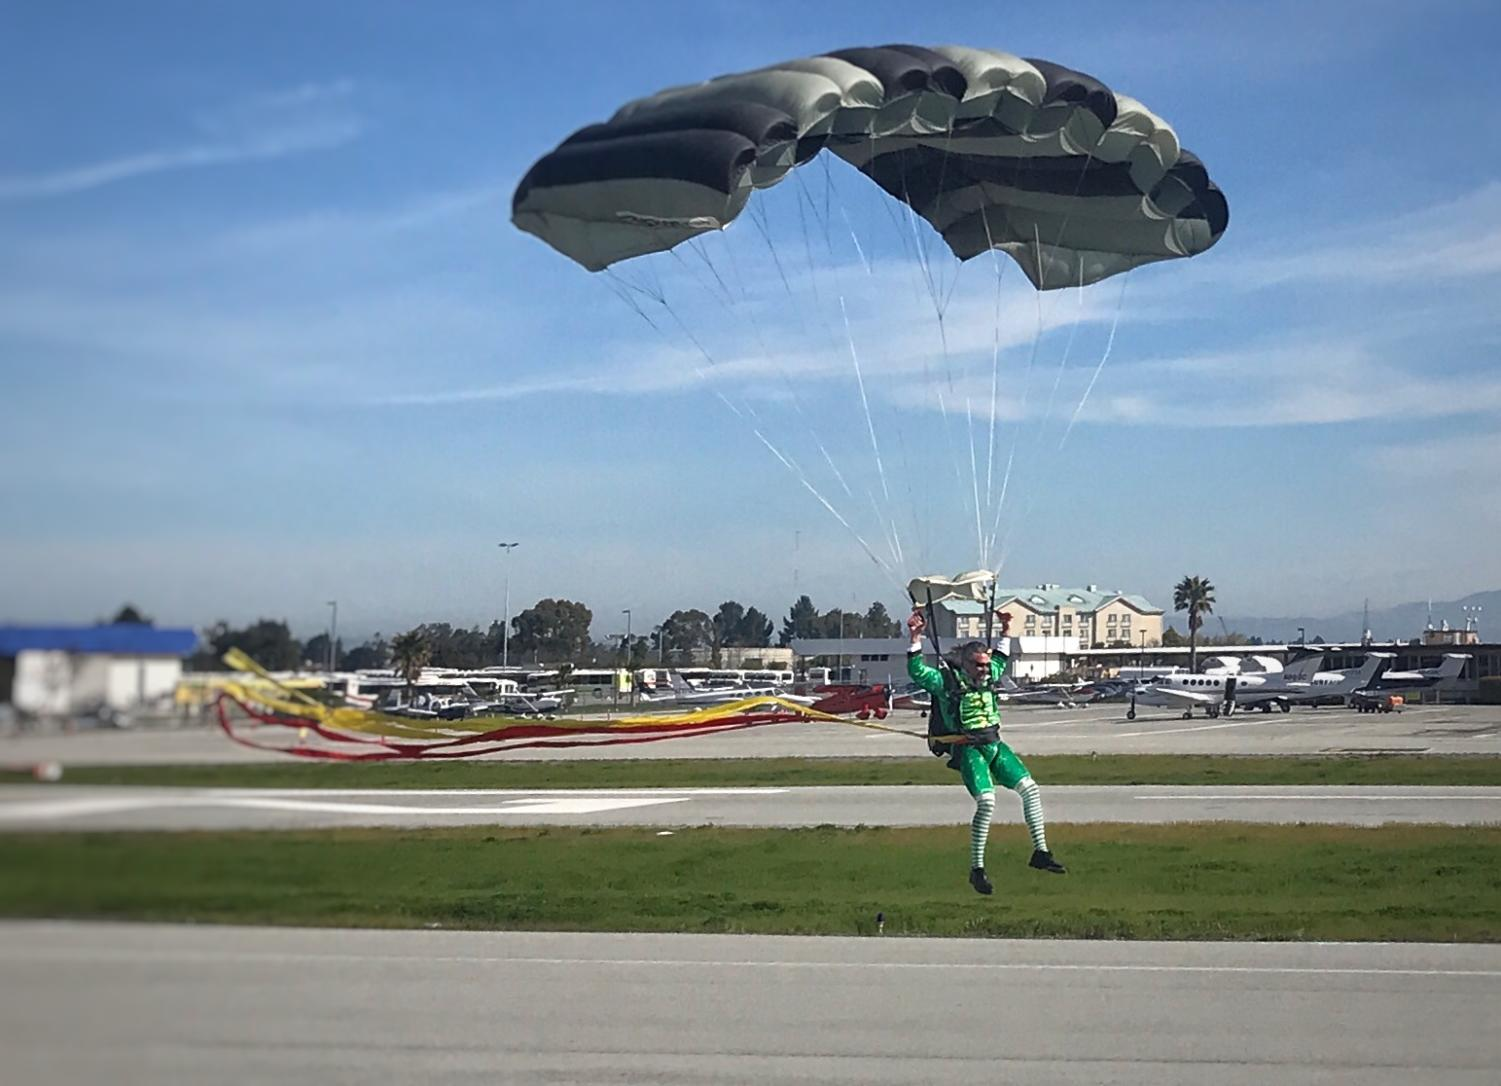 Ed Pawlowski, a professional skydiver, dresses up as a leprechaun to make his grand entrance at the Hiller Aviation Museum. The museum hosts events for Easter, Halloween, and Christmas in addition to St. Patrick's Day.